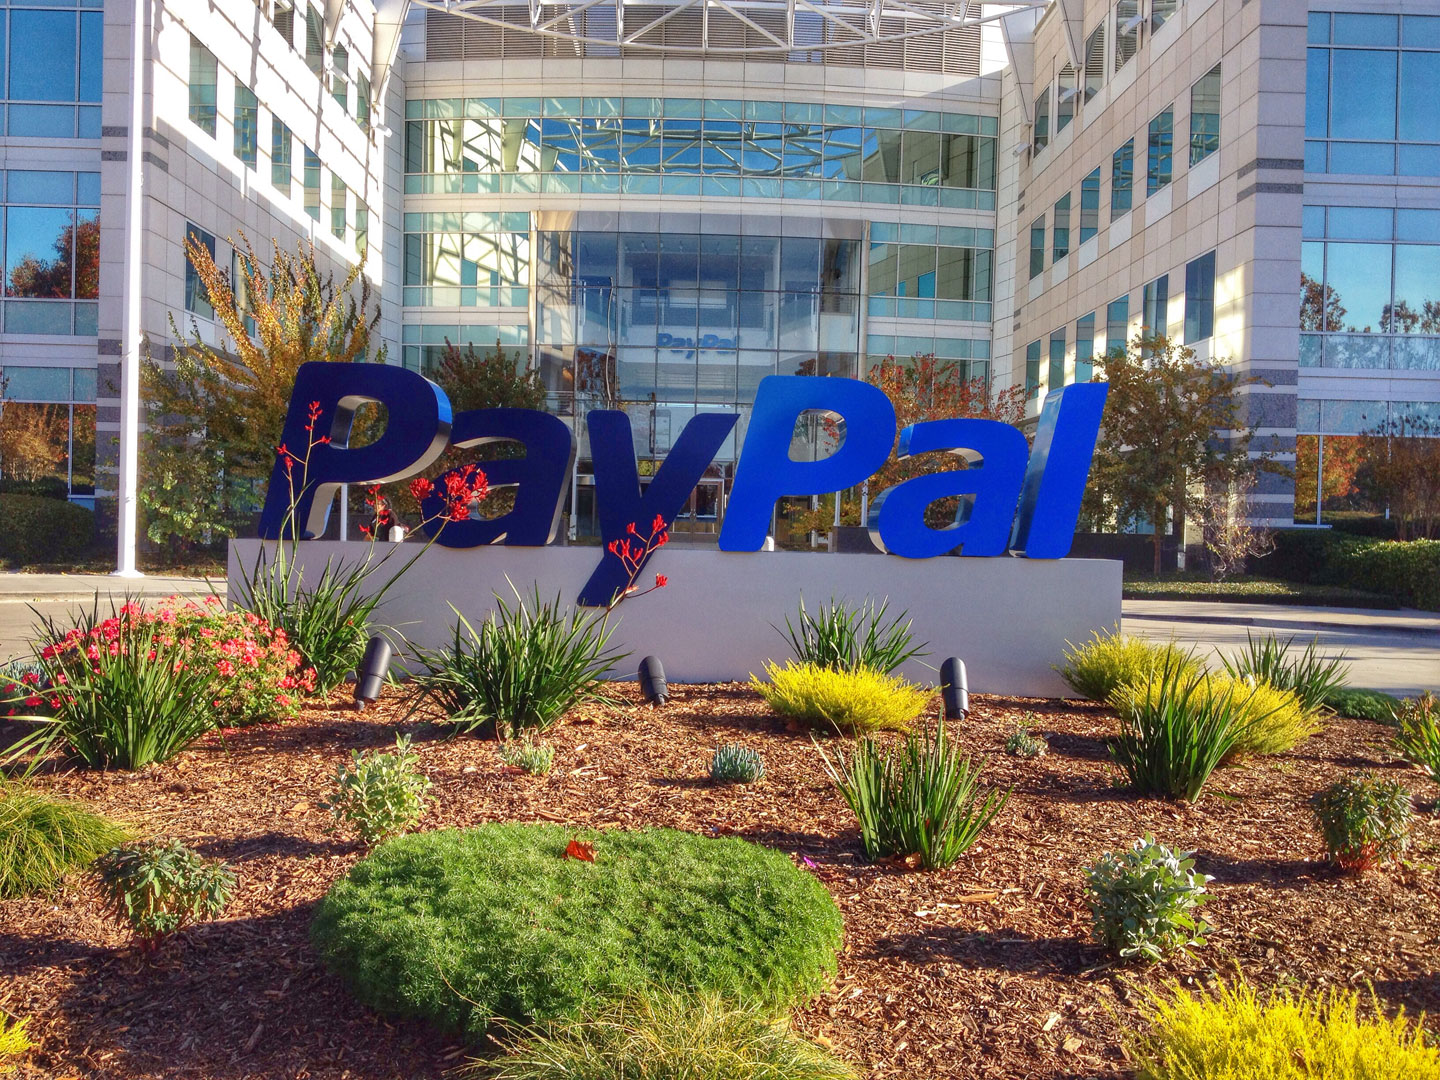 no paypal in pakistan unsupported countries